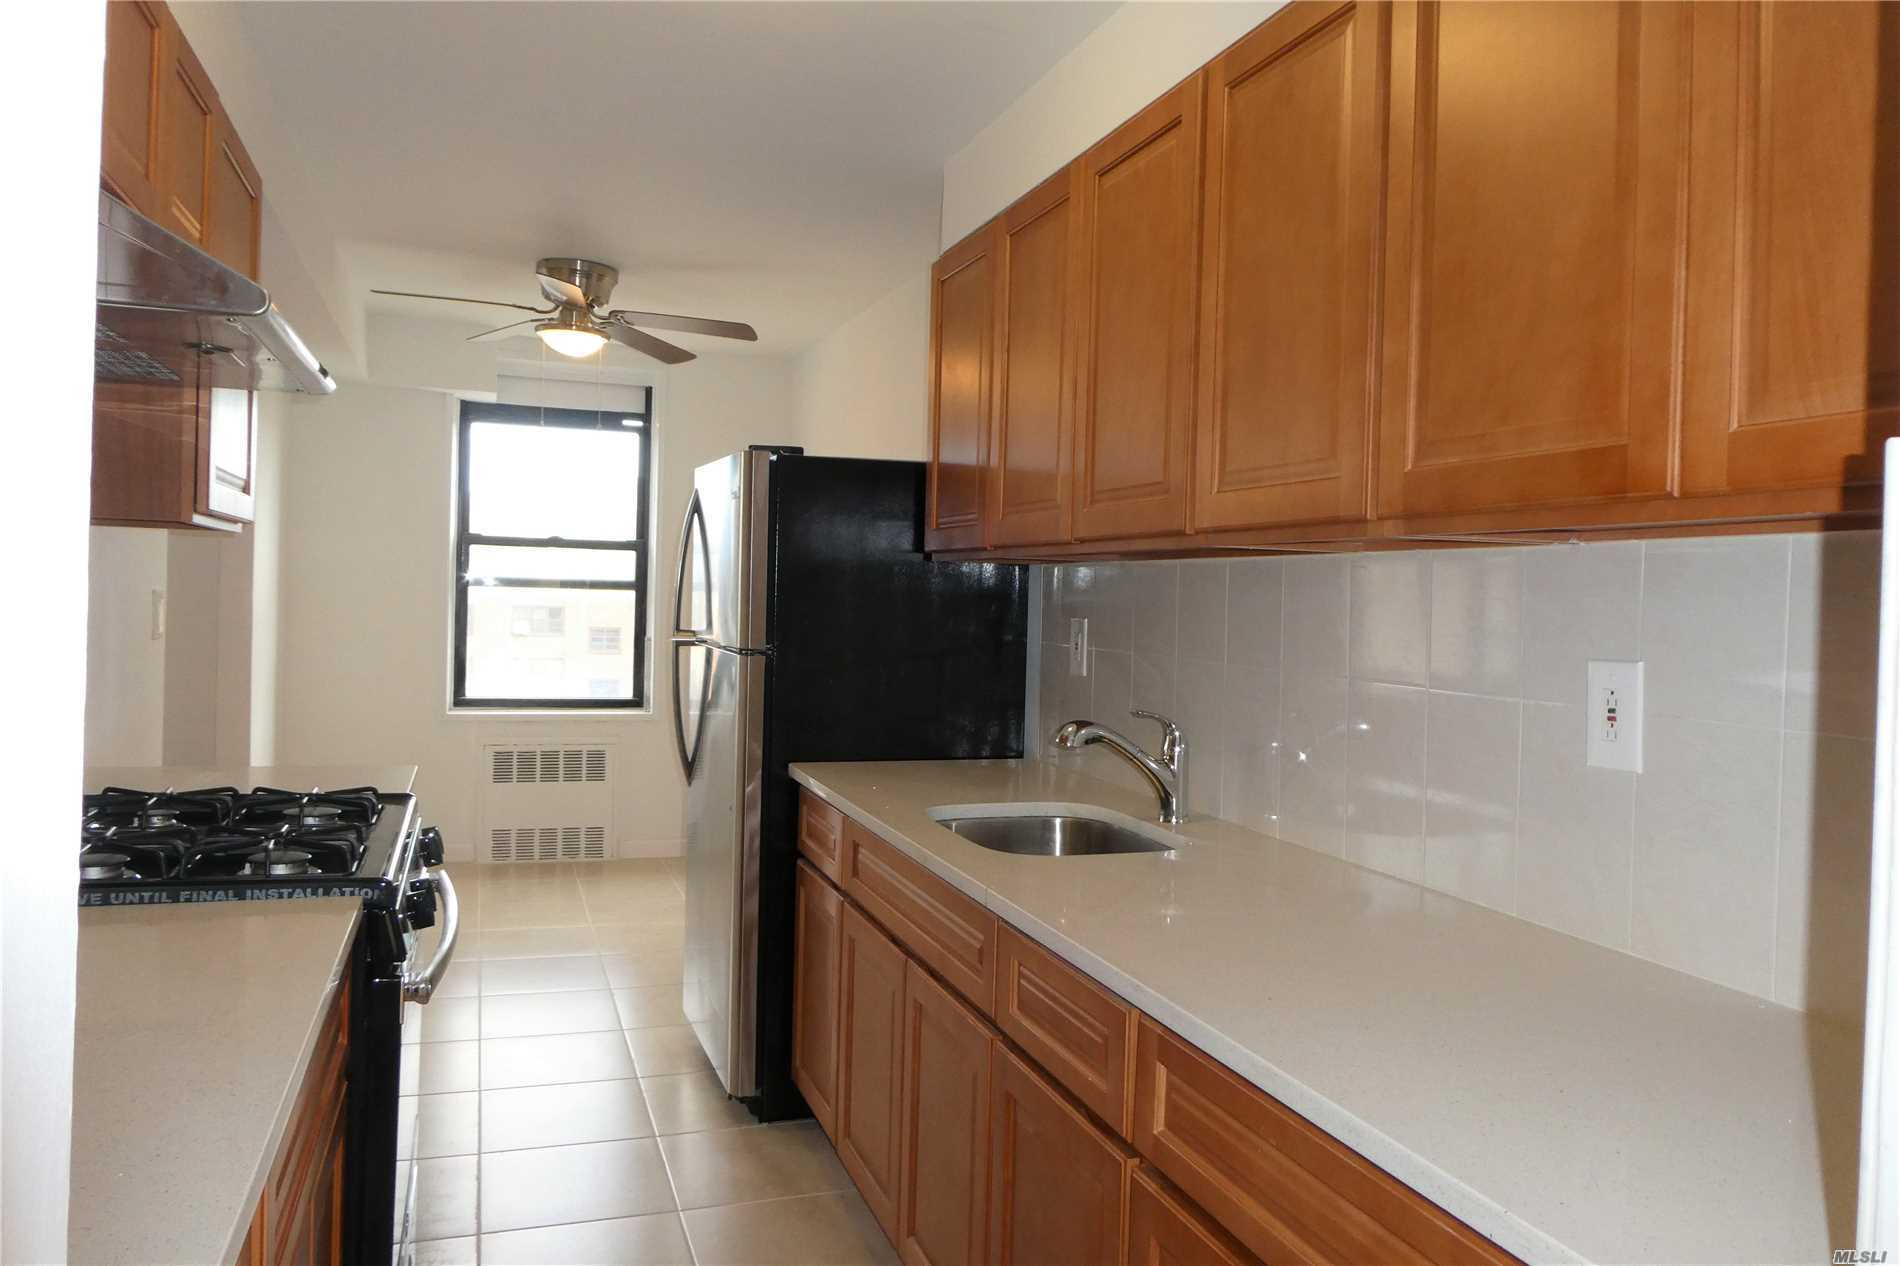 Newly Renovated Large 2 Bedroom Condo. Conveniently Located Near Queens College And Townsend Harris High School. Bright Corner Unit With Spacious Floor Plan Approx 975 Sqft. Hardwood Floors Throughout. Low Cc Include Hot Water, Heat And Cooking Gas. Q25/Q34 To Flushing, Q64 To Forest Hills, Qm4 Express Buses To City.